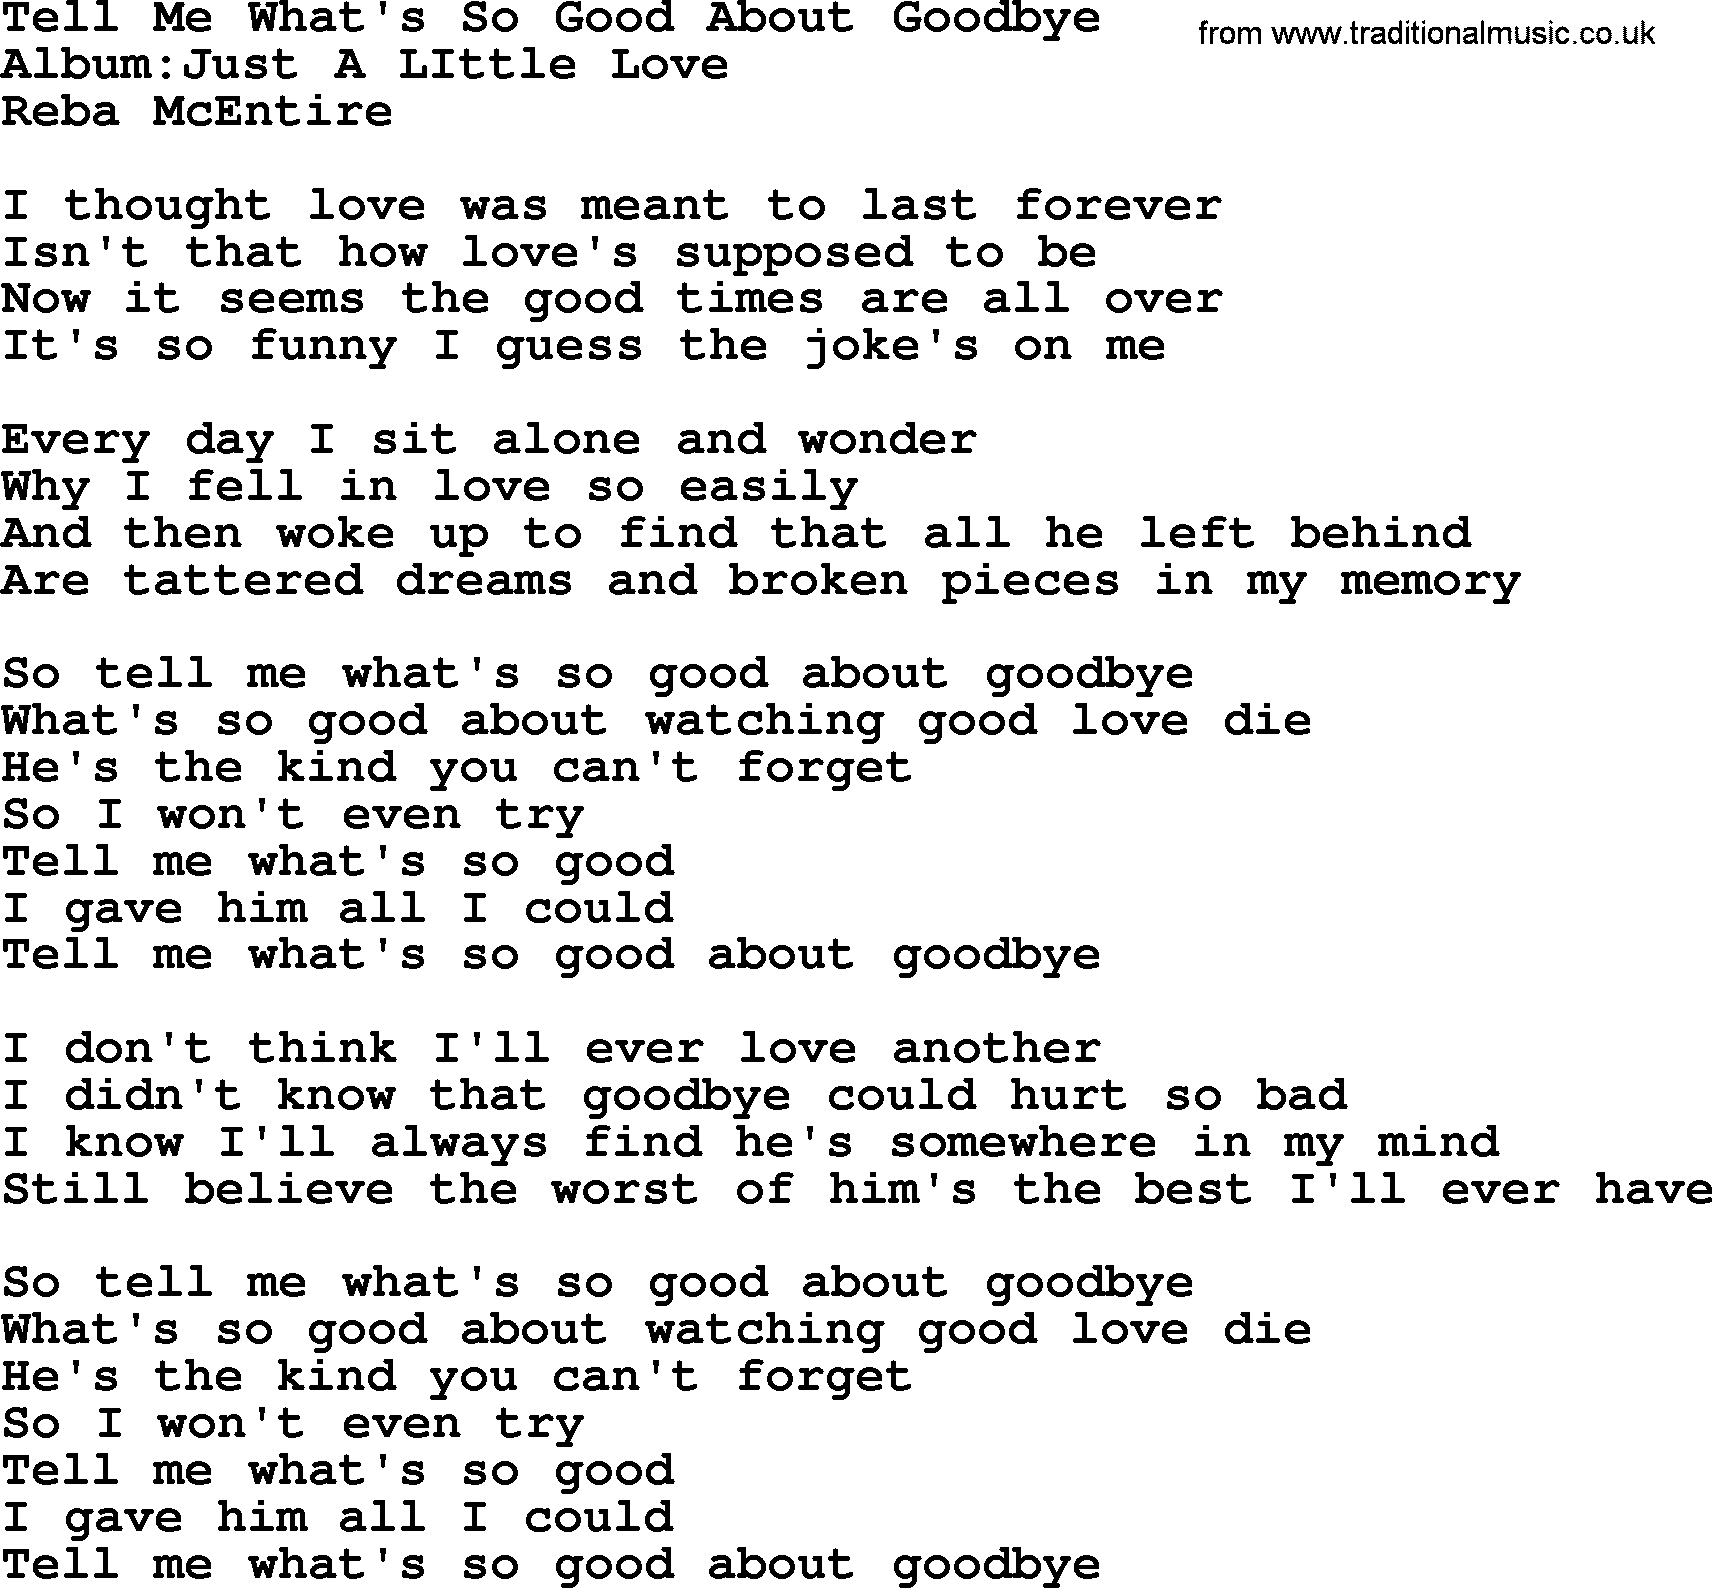 Tell Me What's So Good About Goodbye, by Reba McEntire - lyrics